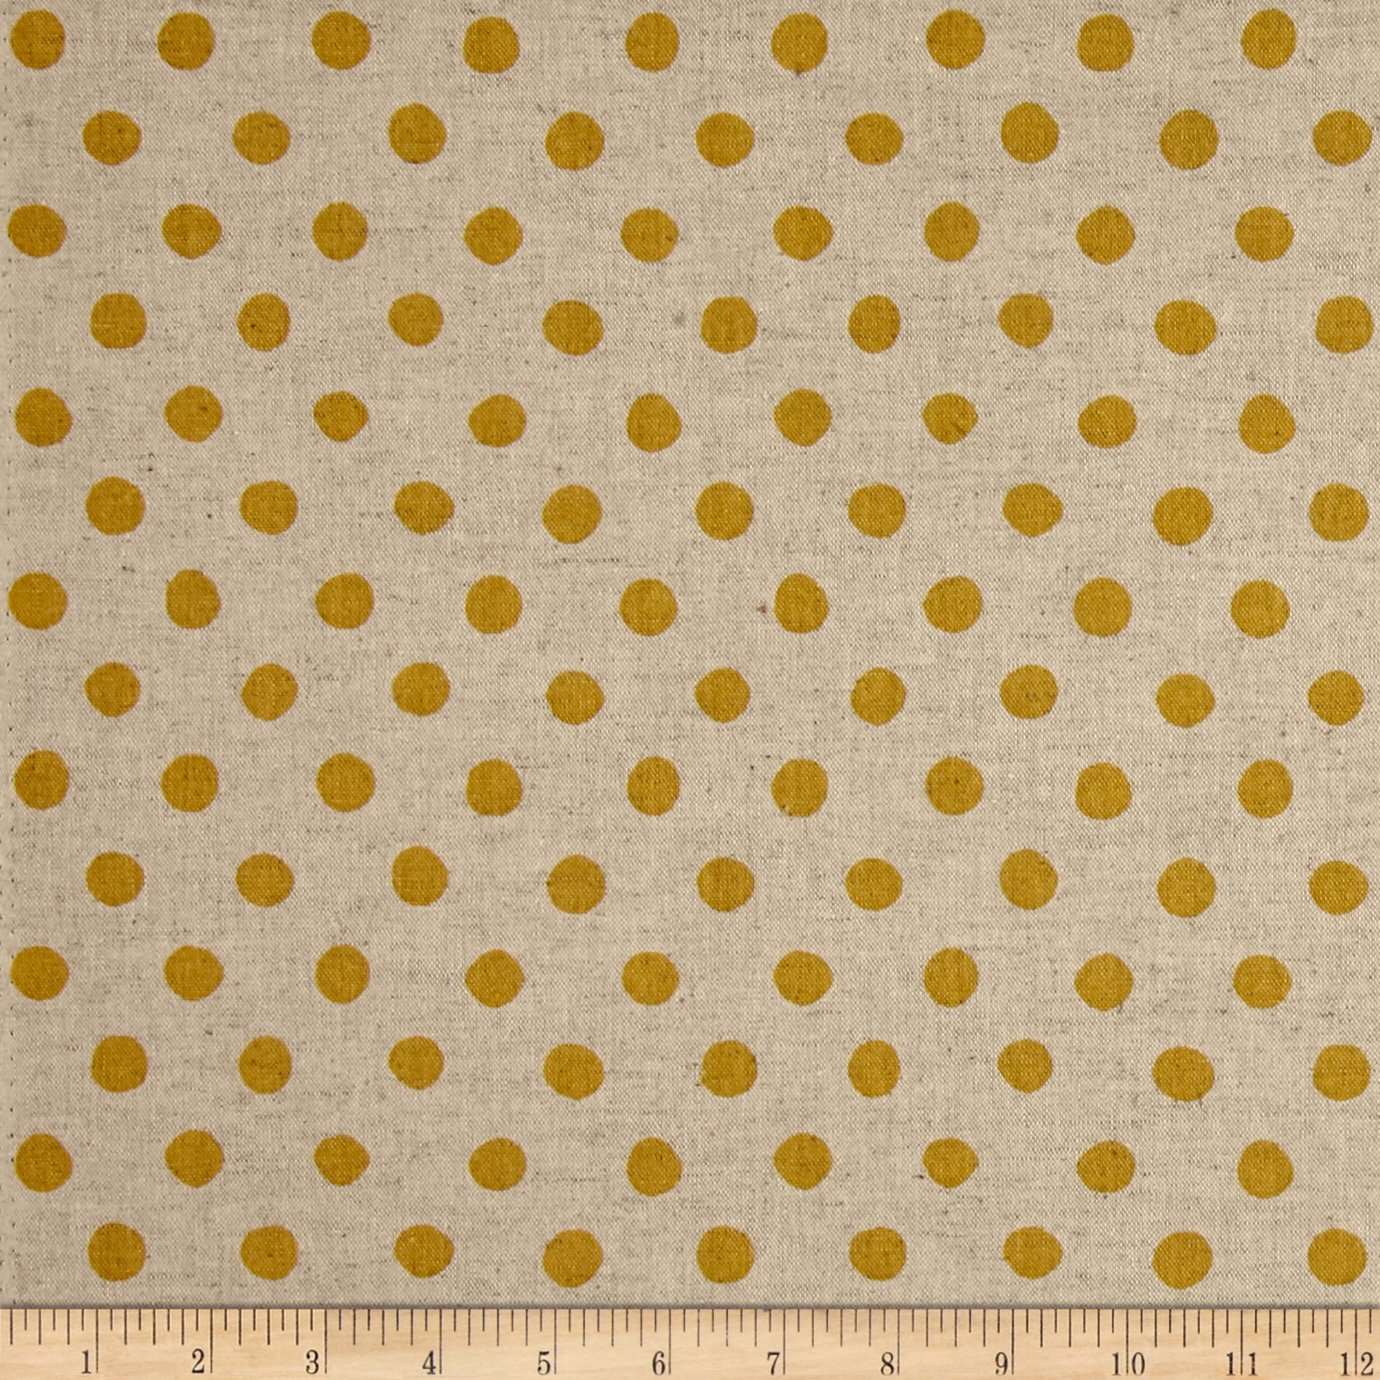 Kaufman Sevenberry Canvas Natural Dots Large Yellow Fabric by Kaufman in USA